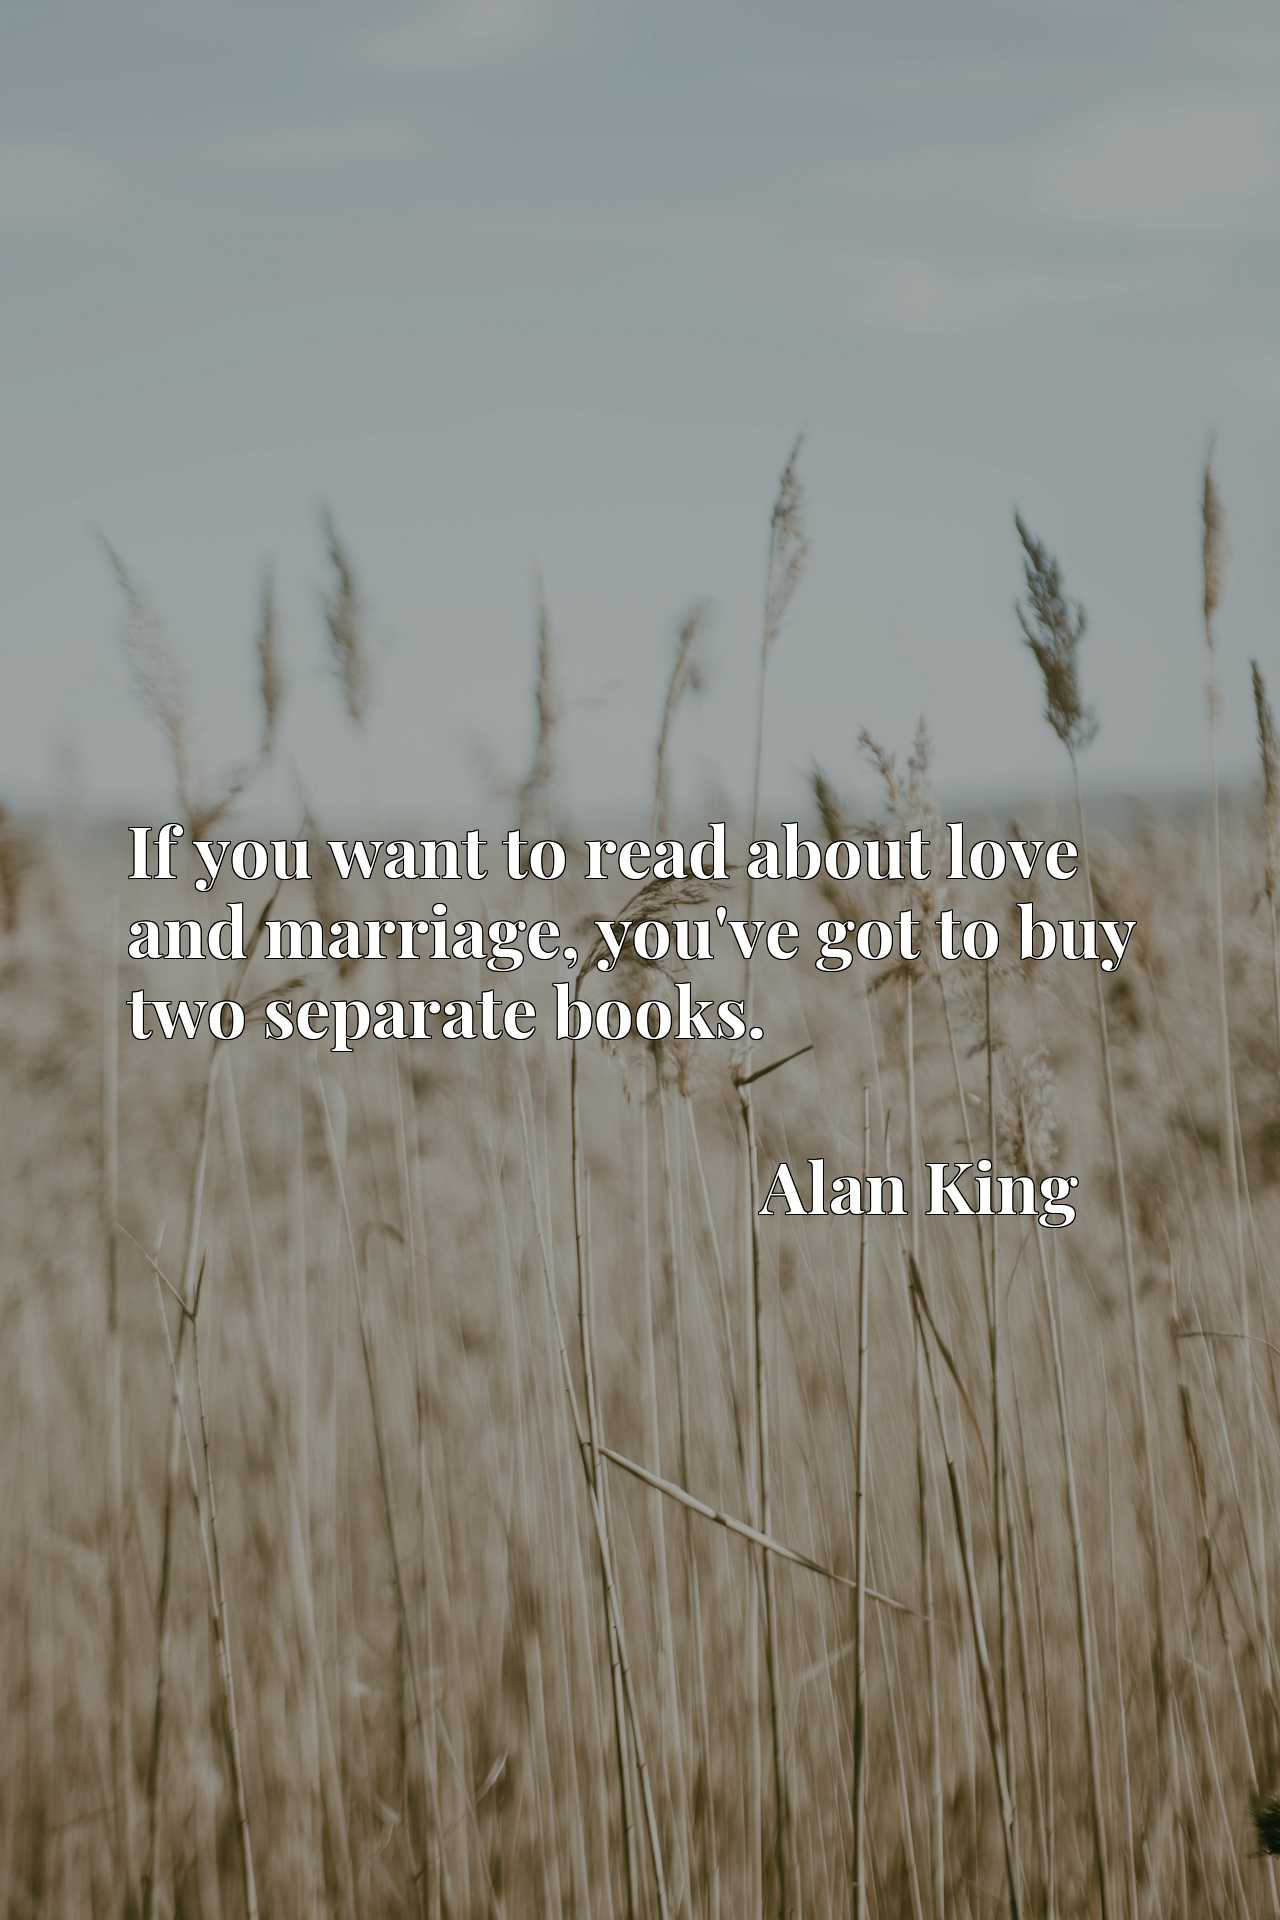 Quote Picture :If you want to read about love and marriage, you've got to buy two separate books.